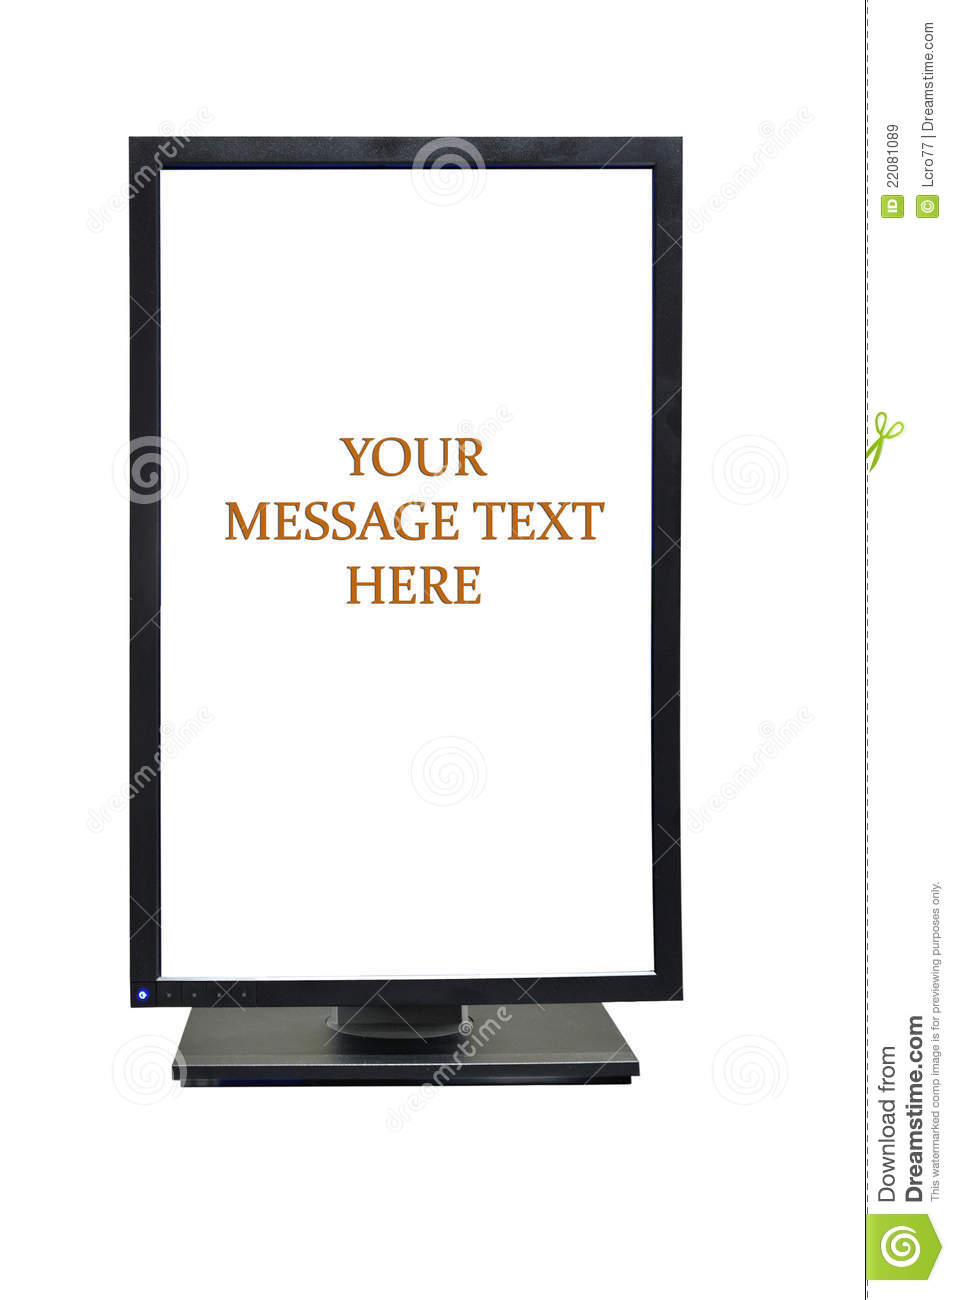 Write your text